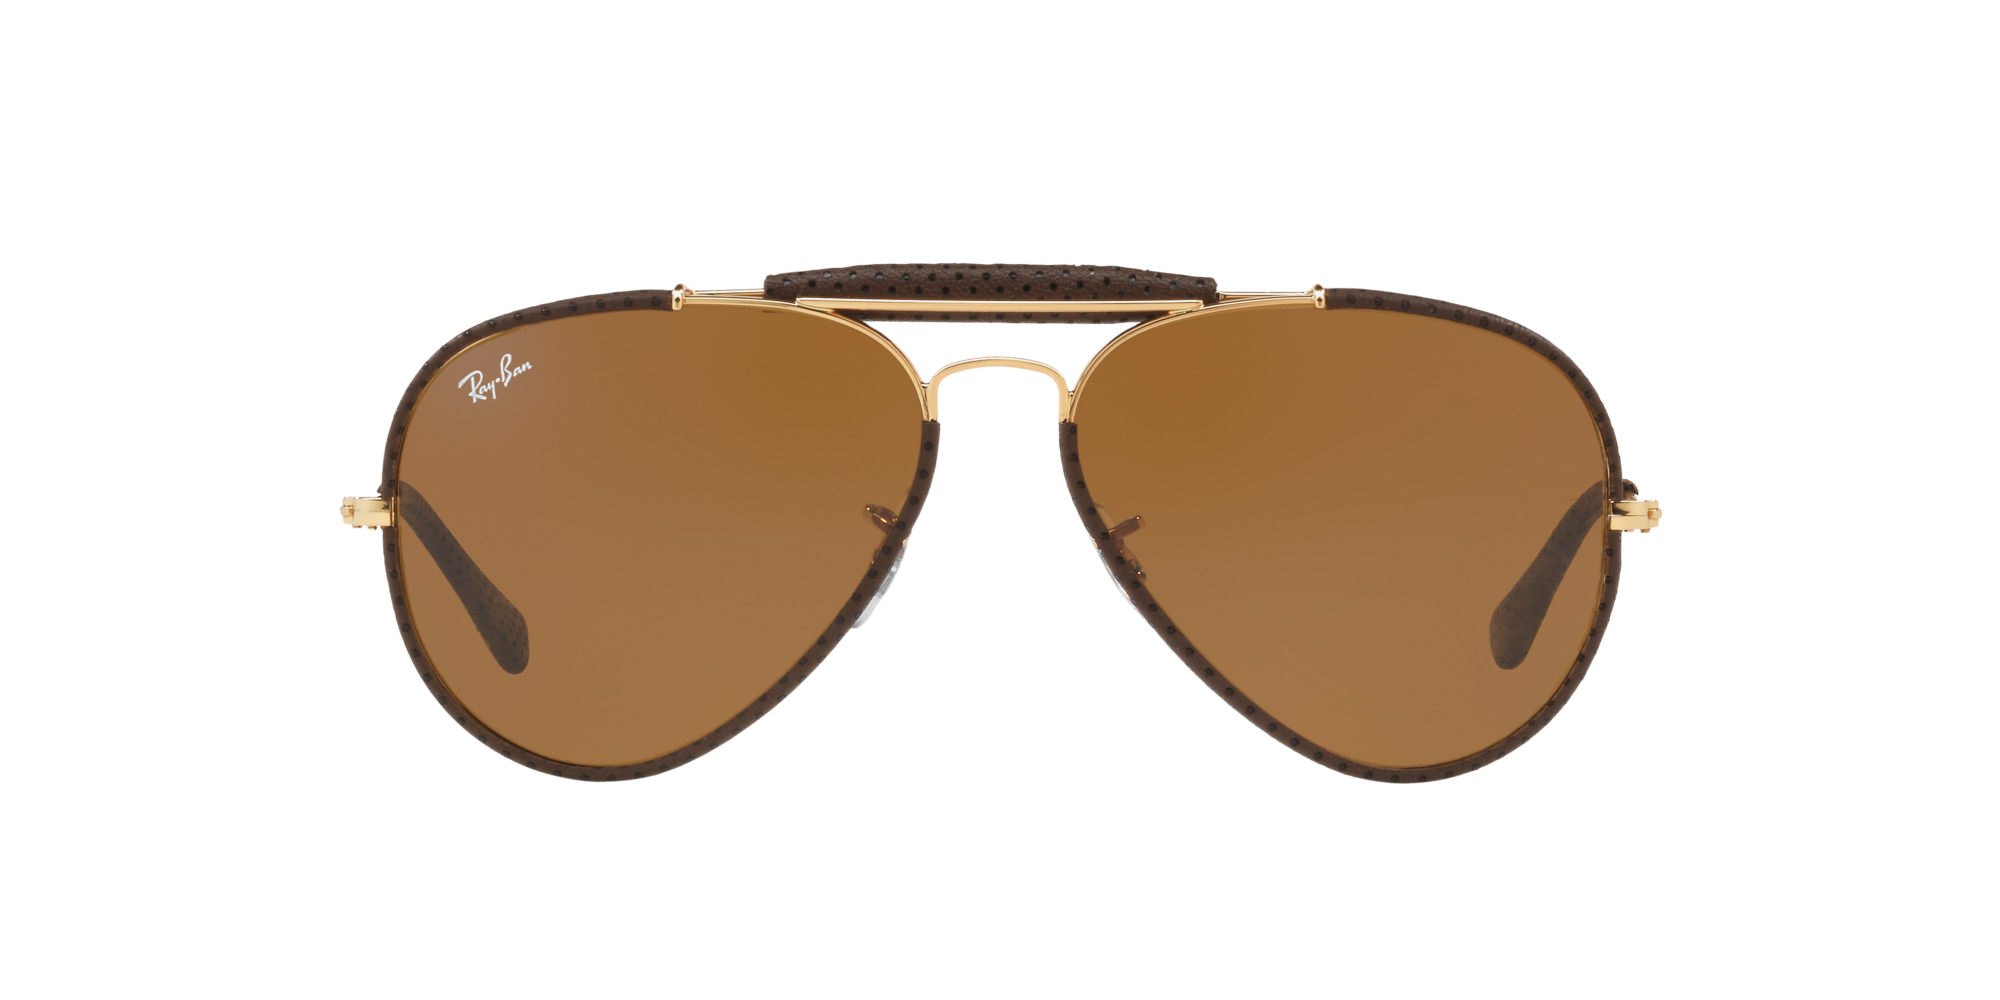 989a9e1f07617 gafas de sol RAY-BAN AVIATOR CRAFT RB 3422Q 9041. 360° Product View 360°  Product View ...